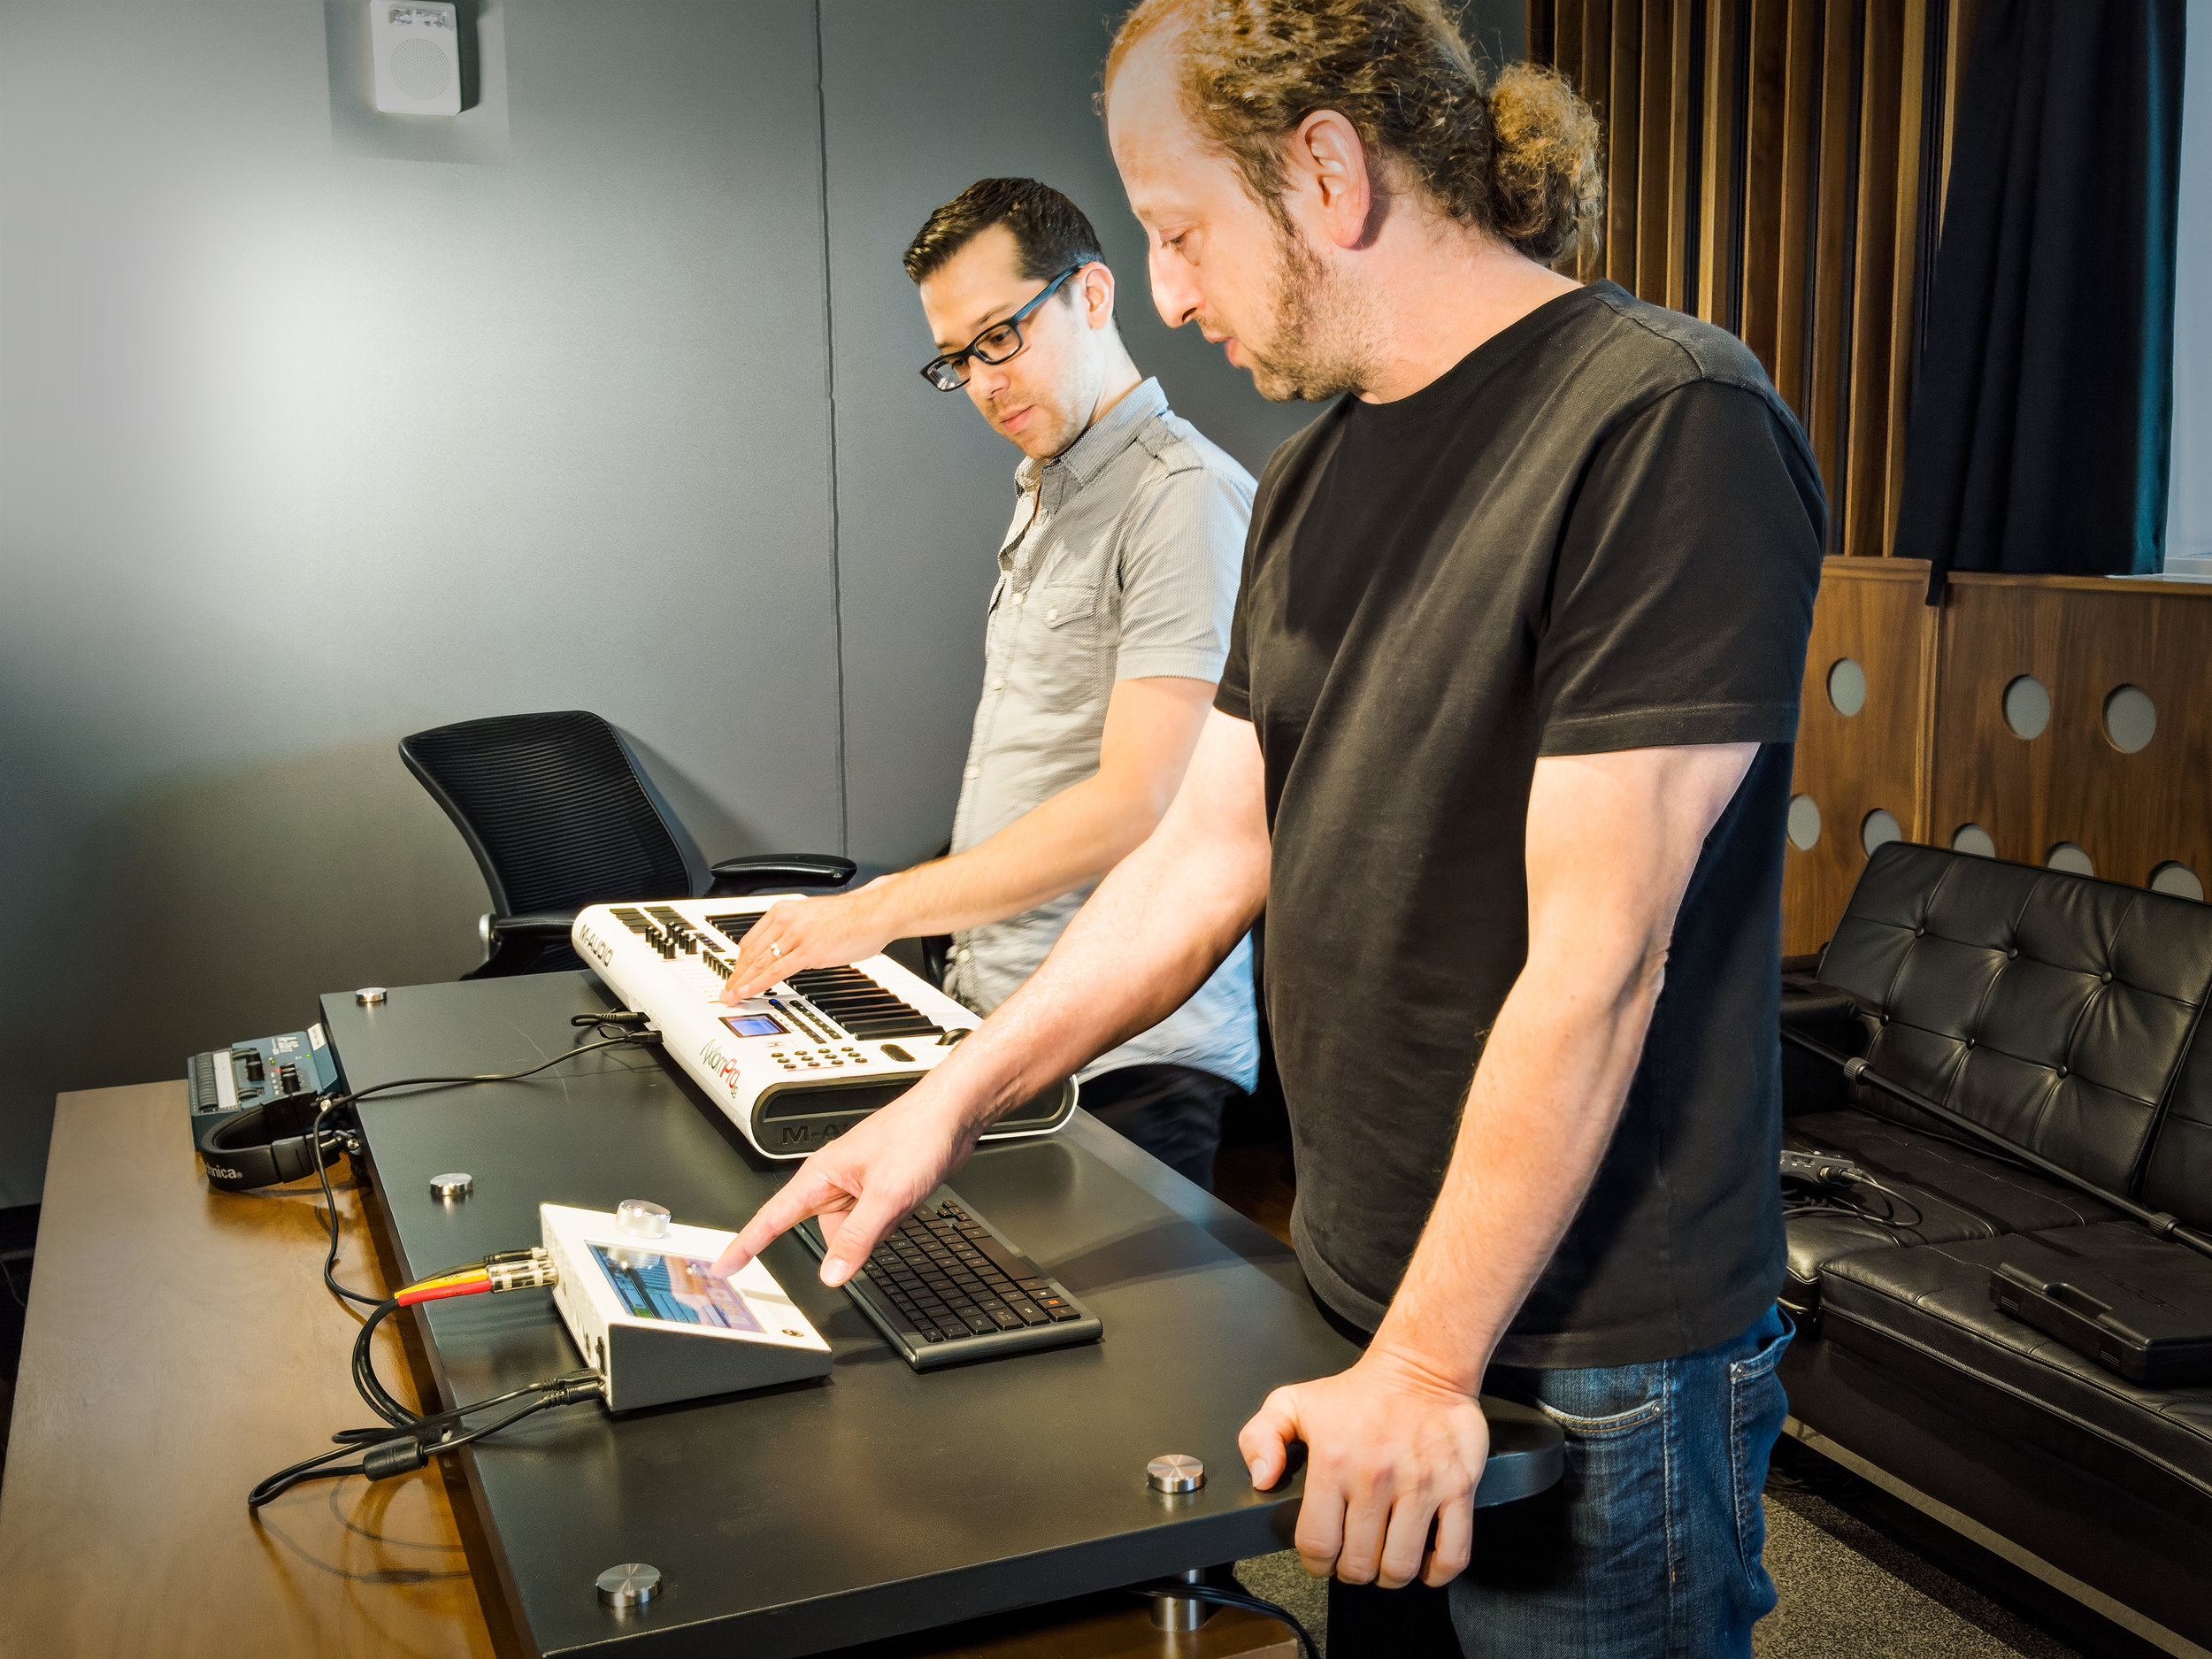 Vince and our friend  Jason Wexler  mid session. Jason's instrument keyboard is connected via USB while Vince is using both the touch screen and a Bluetooth remote keyboard.